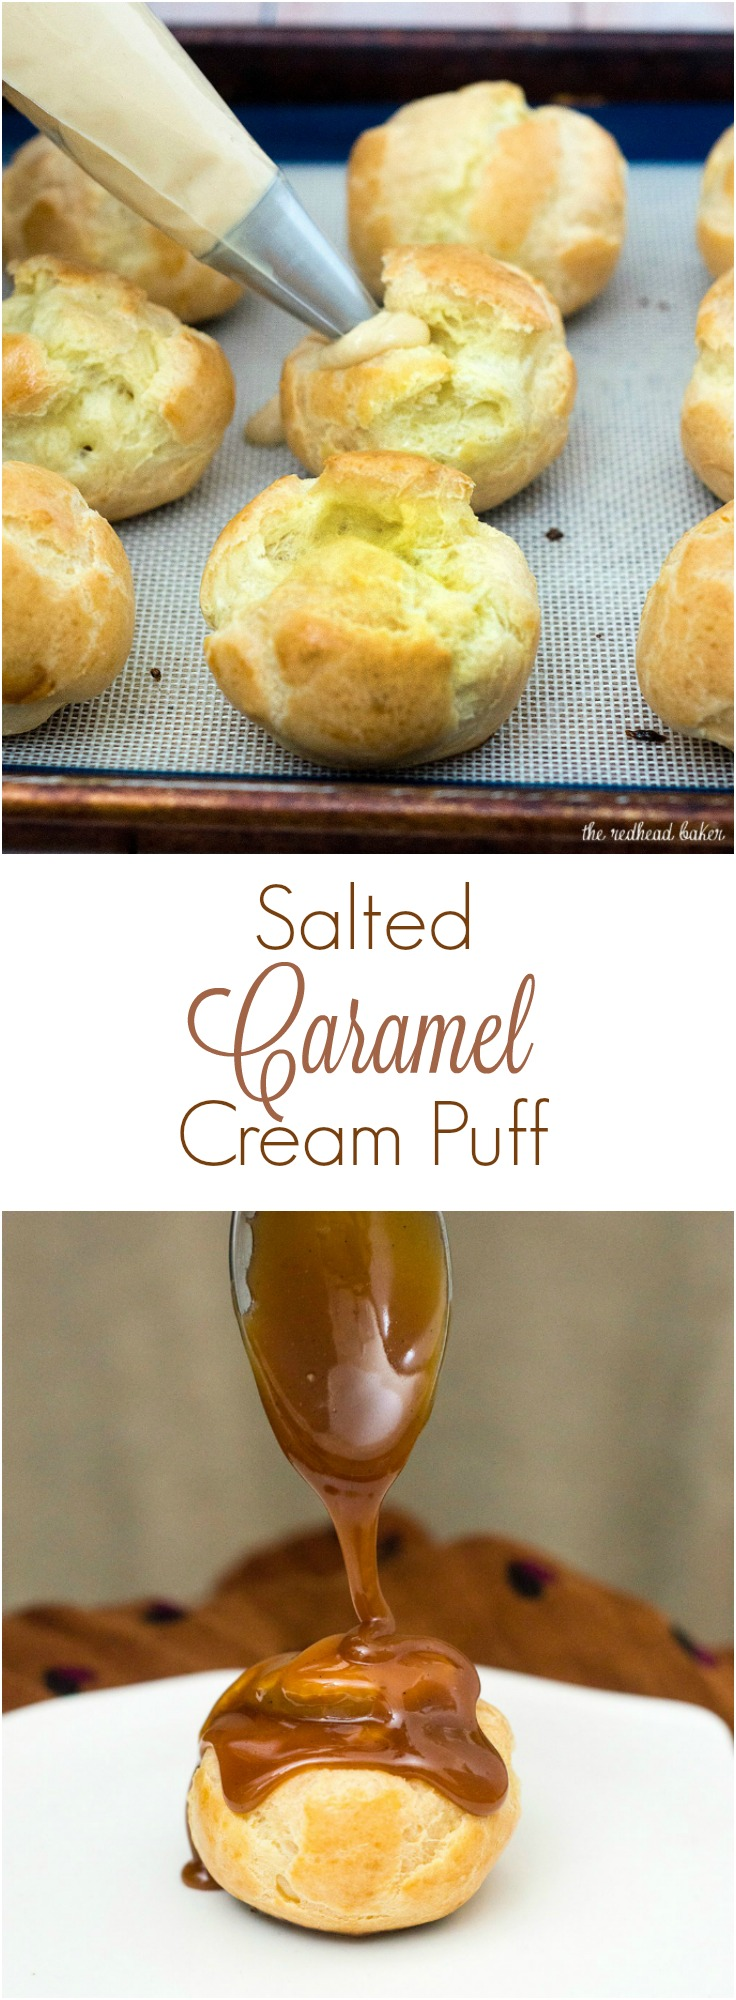 Finger food can be dessert, too! Bite-size salted caramel cream puffs are the perfect balance of salty and sweet flavors. #SundaySupper TheRedheadBaker.com